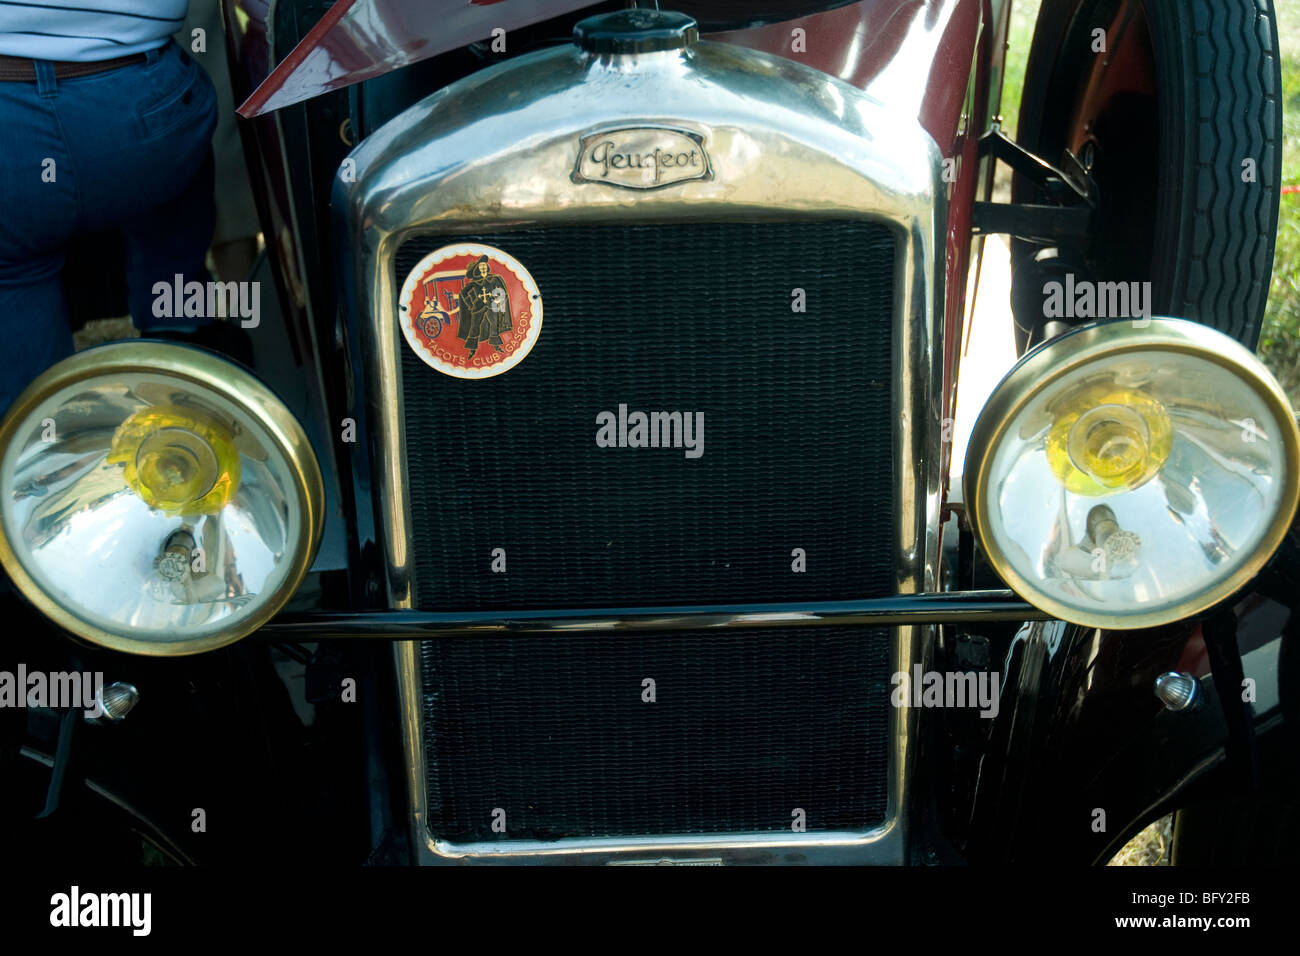 A gleaming vintage Peugeot car displayed at the Gascogne Expo fair in Auch - Stock Image